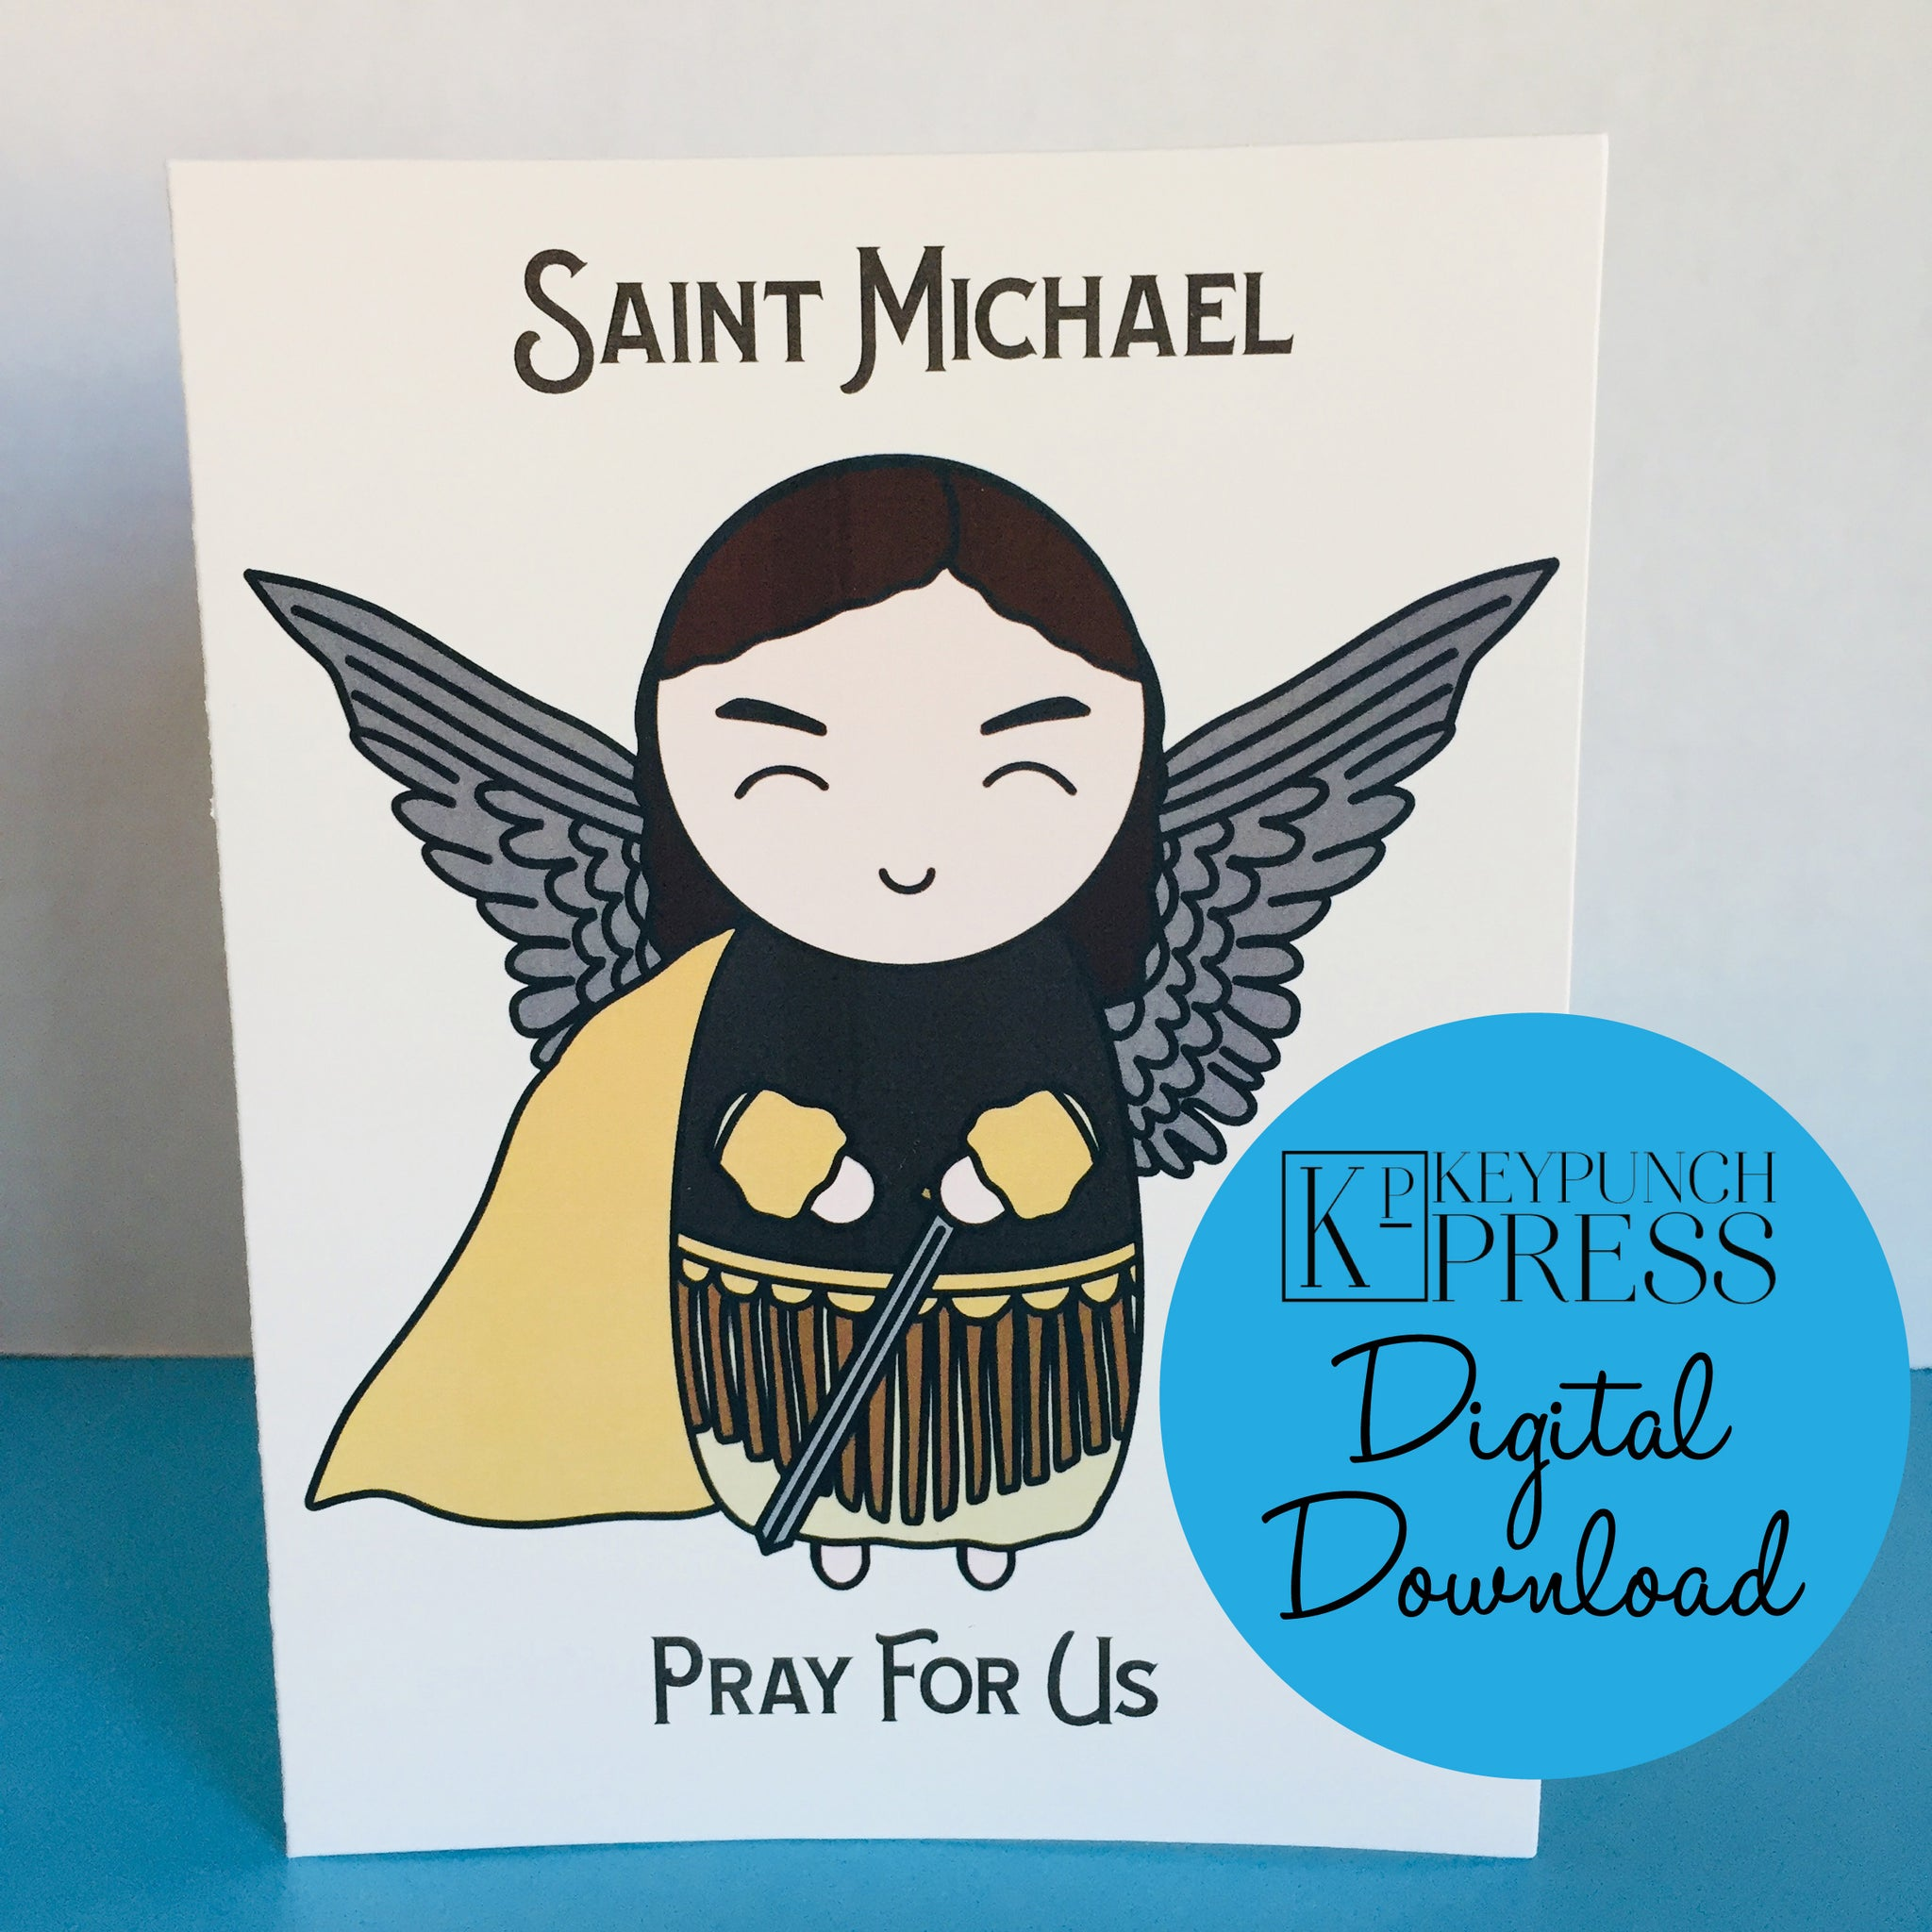 Saint Michael the Archangel Pray For Us Keypunch Press 5x7 Card Digital Download